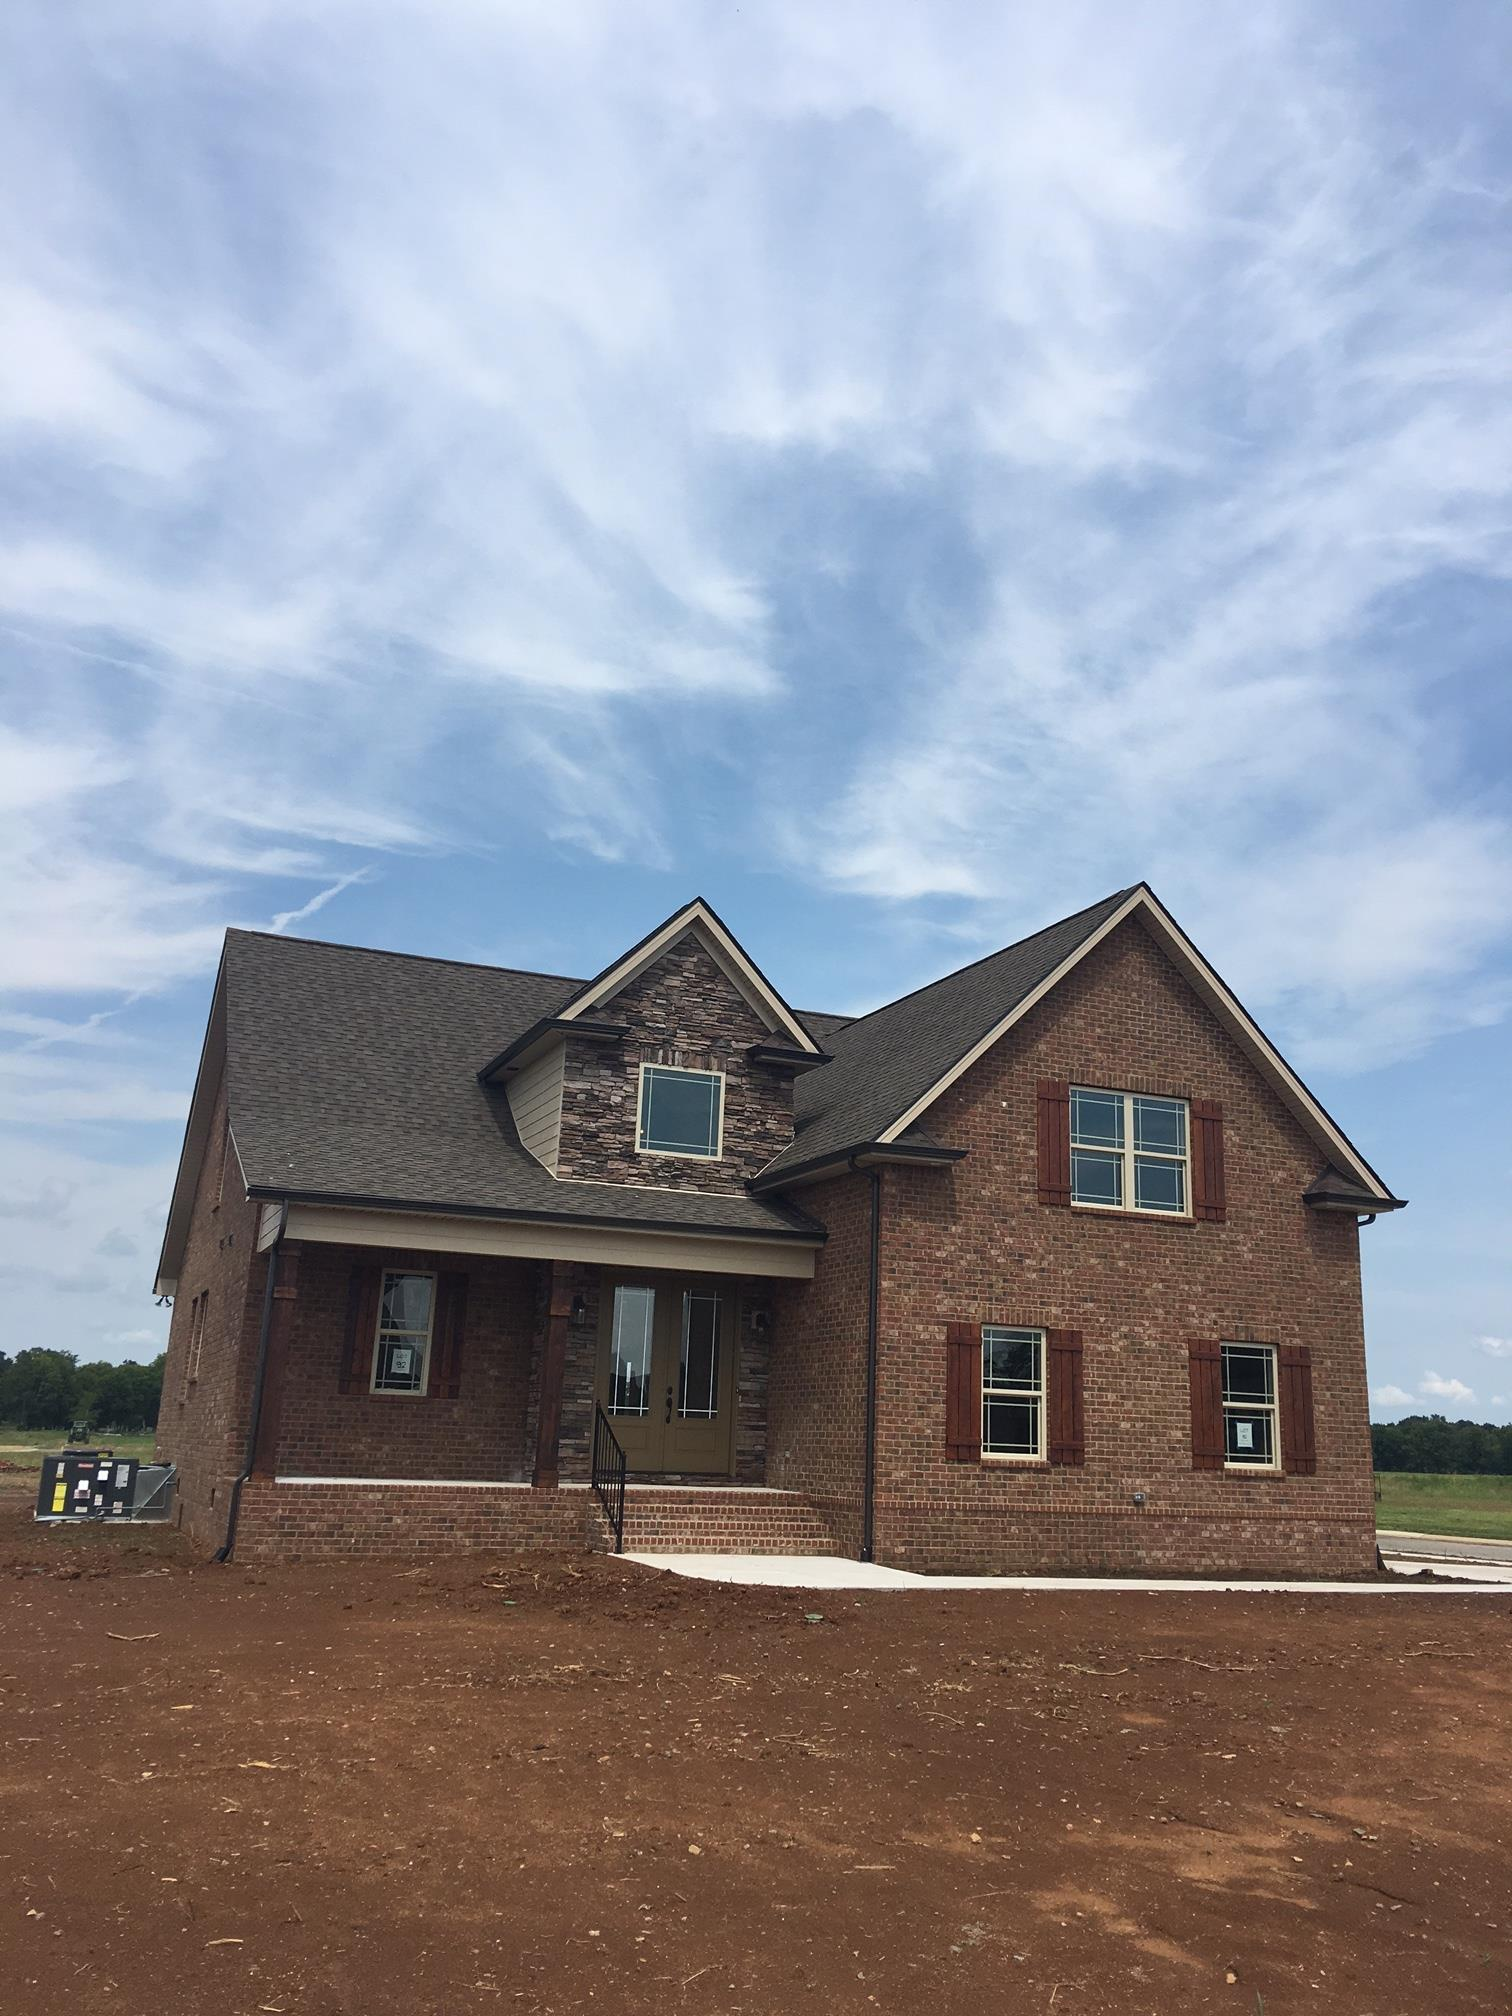 3905 Merryman Lane (Lot 92), Murfreesboro, TN 37127